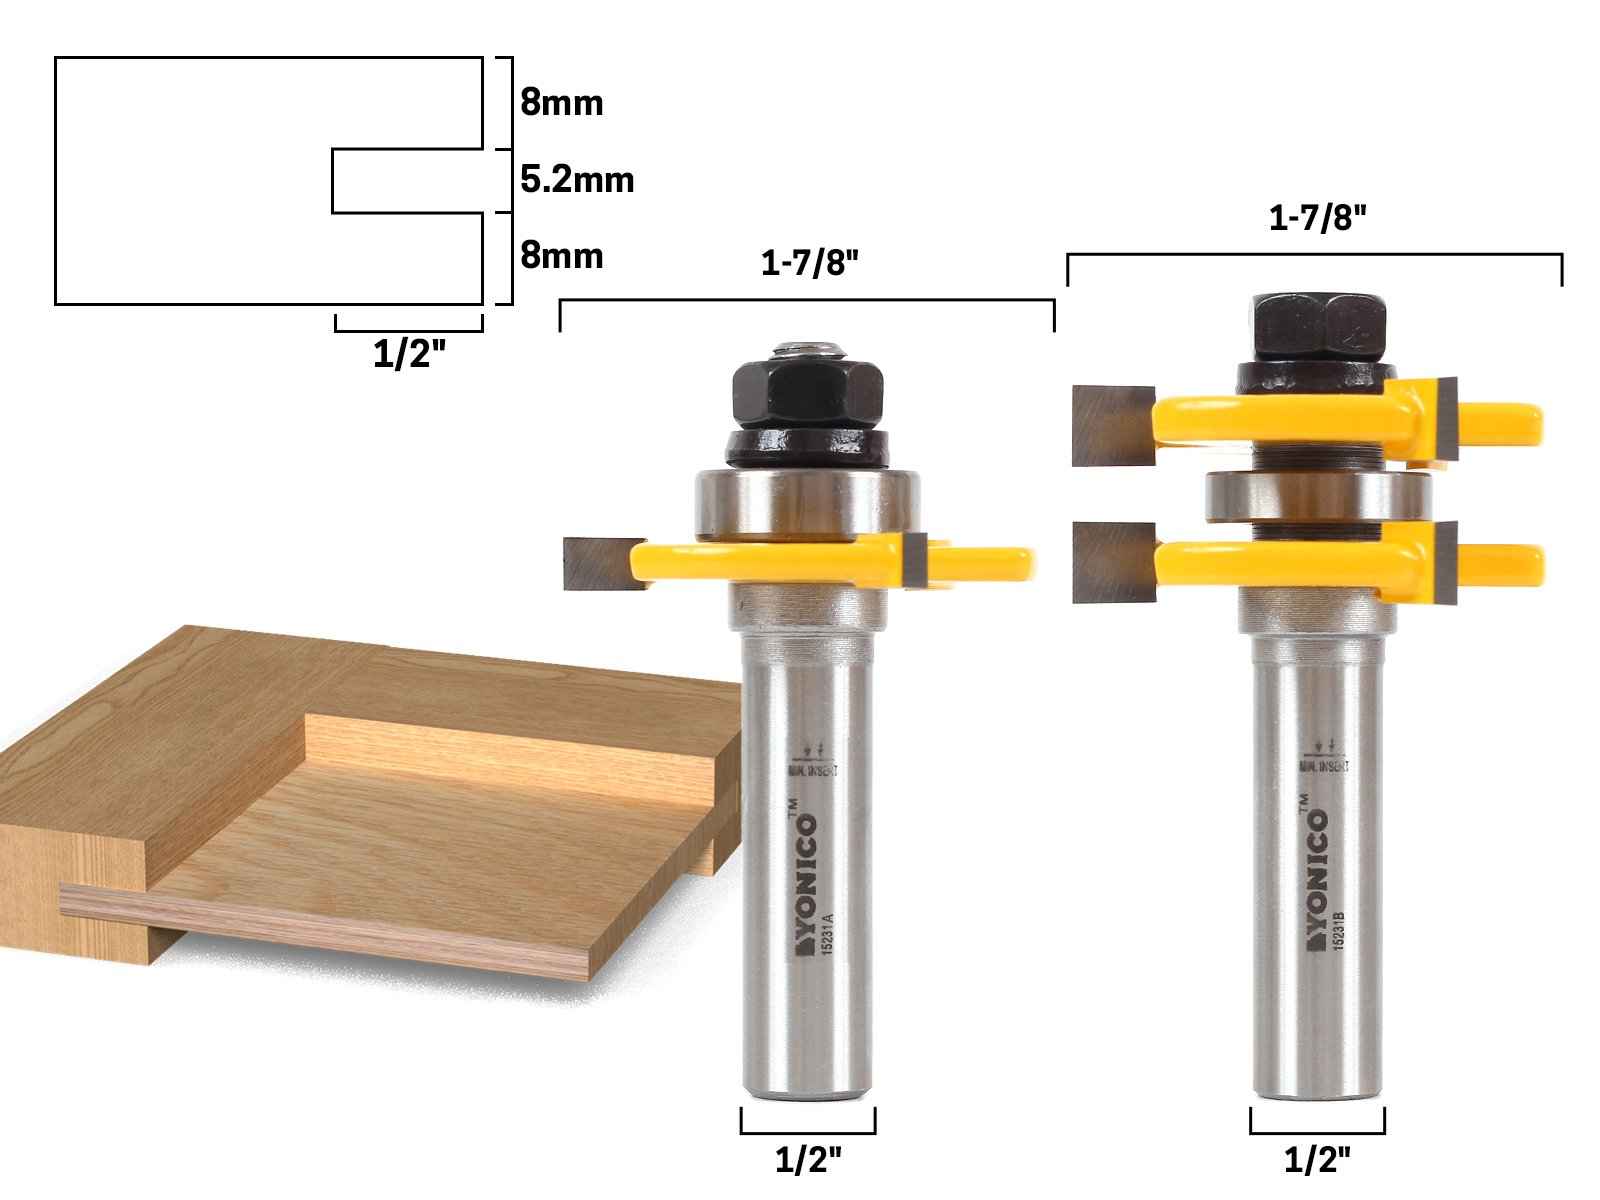 Yonico 15231 1/4-Inch Plywood 2 Bit Plywood Tongue and Groove Router Bit Set 1/2-Inch Shank by Yonico